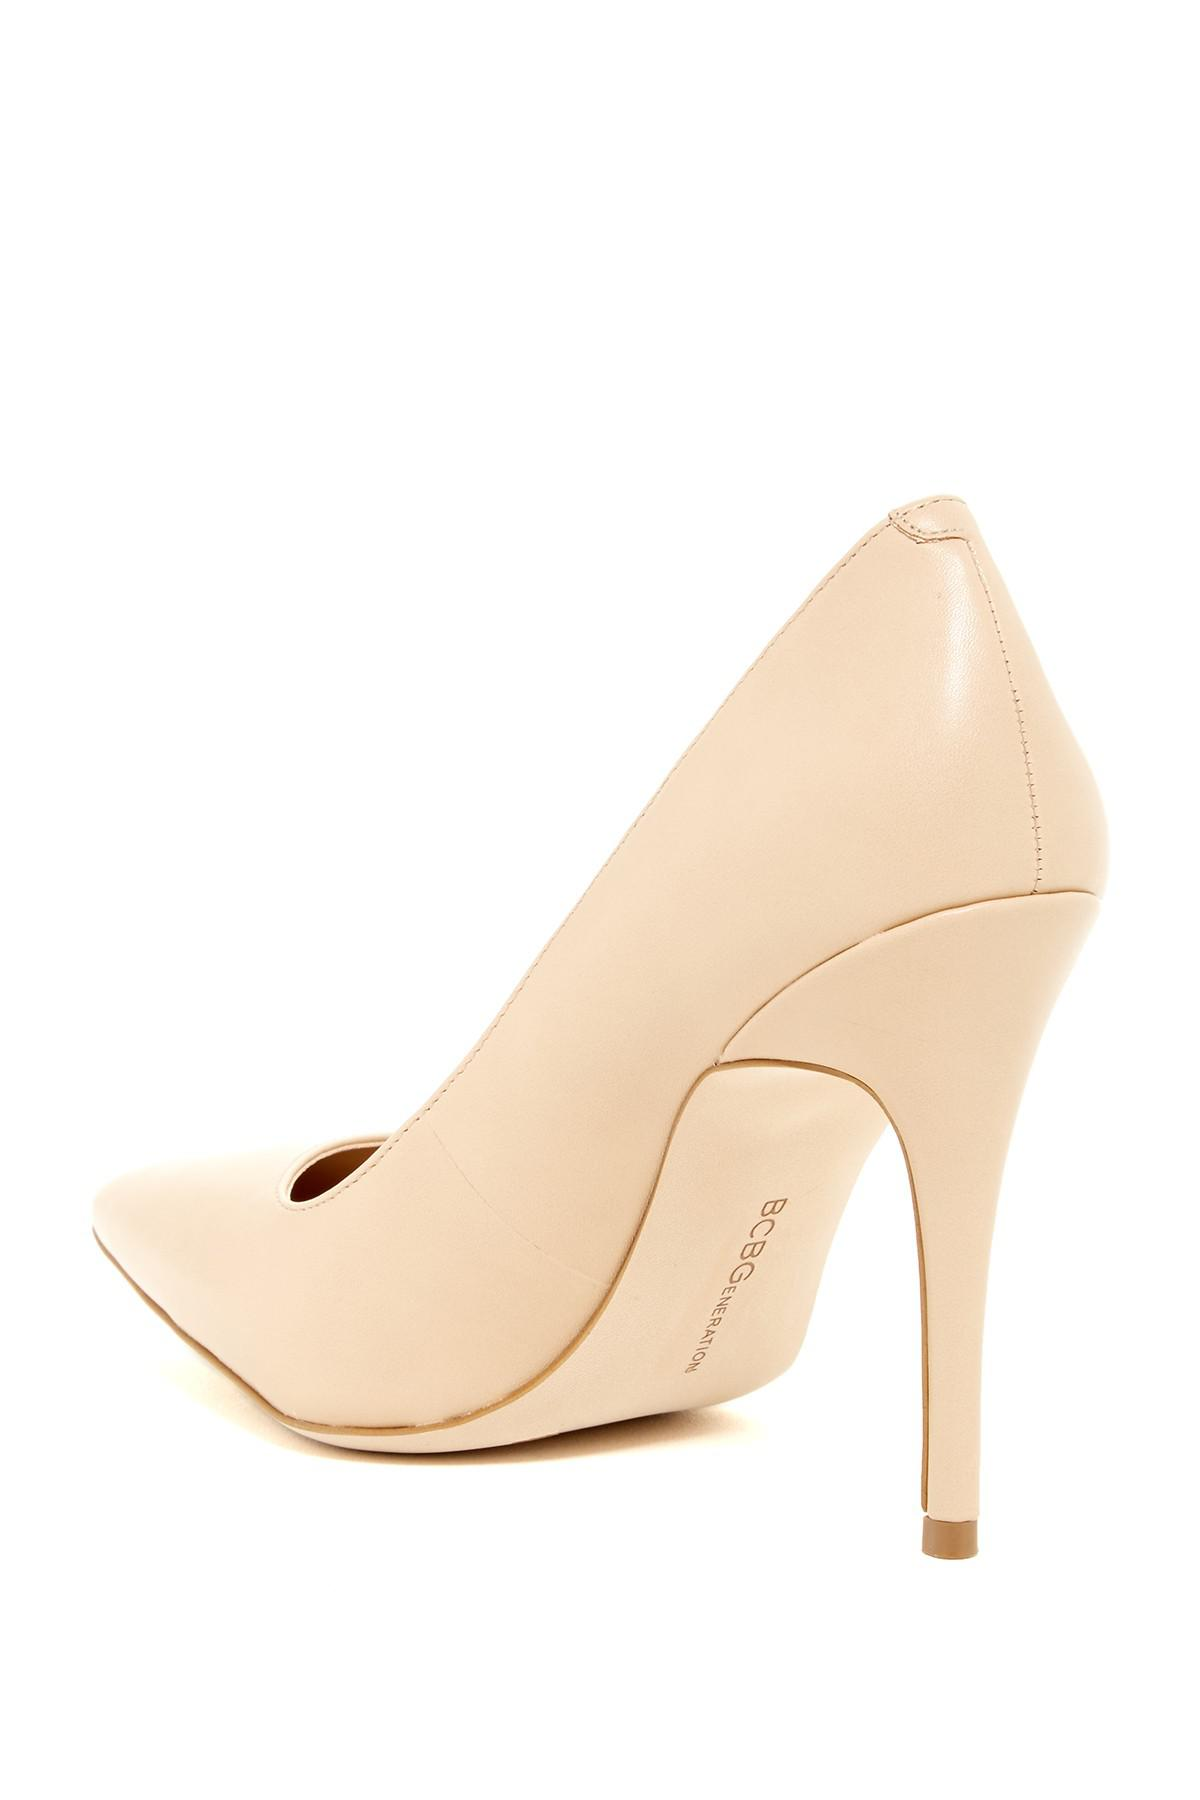 f3bf47491996 Lyst - Bcbgeneration Oslo Pump - Wide Width Available in Natural